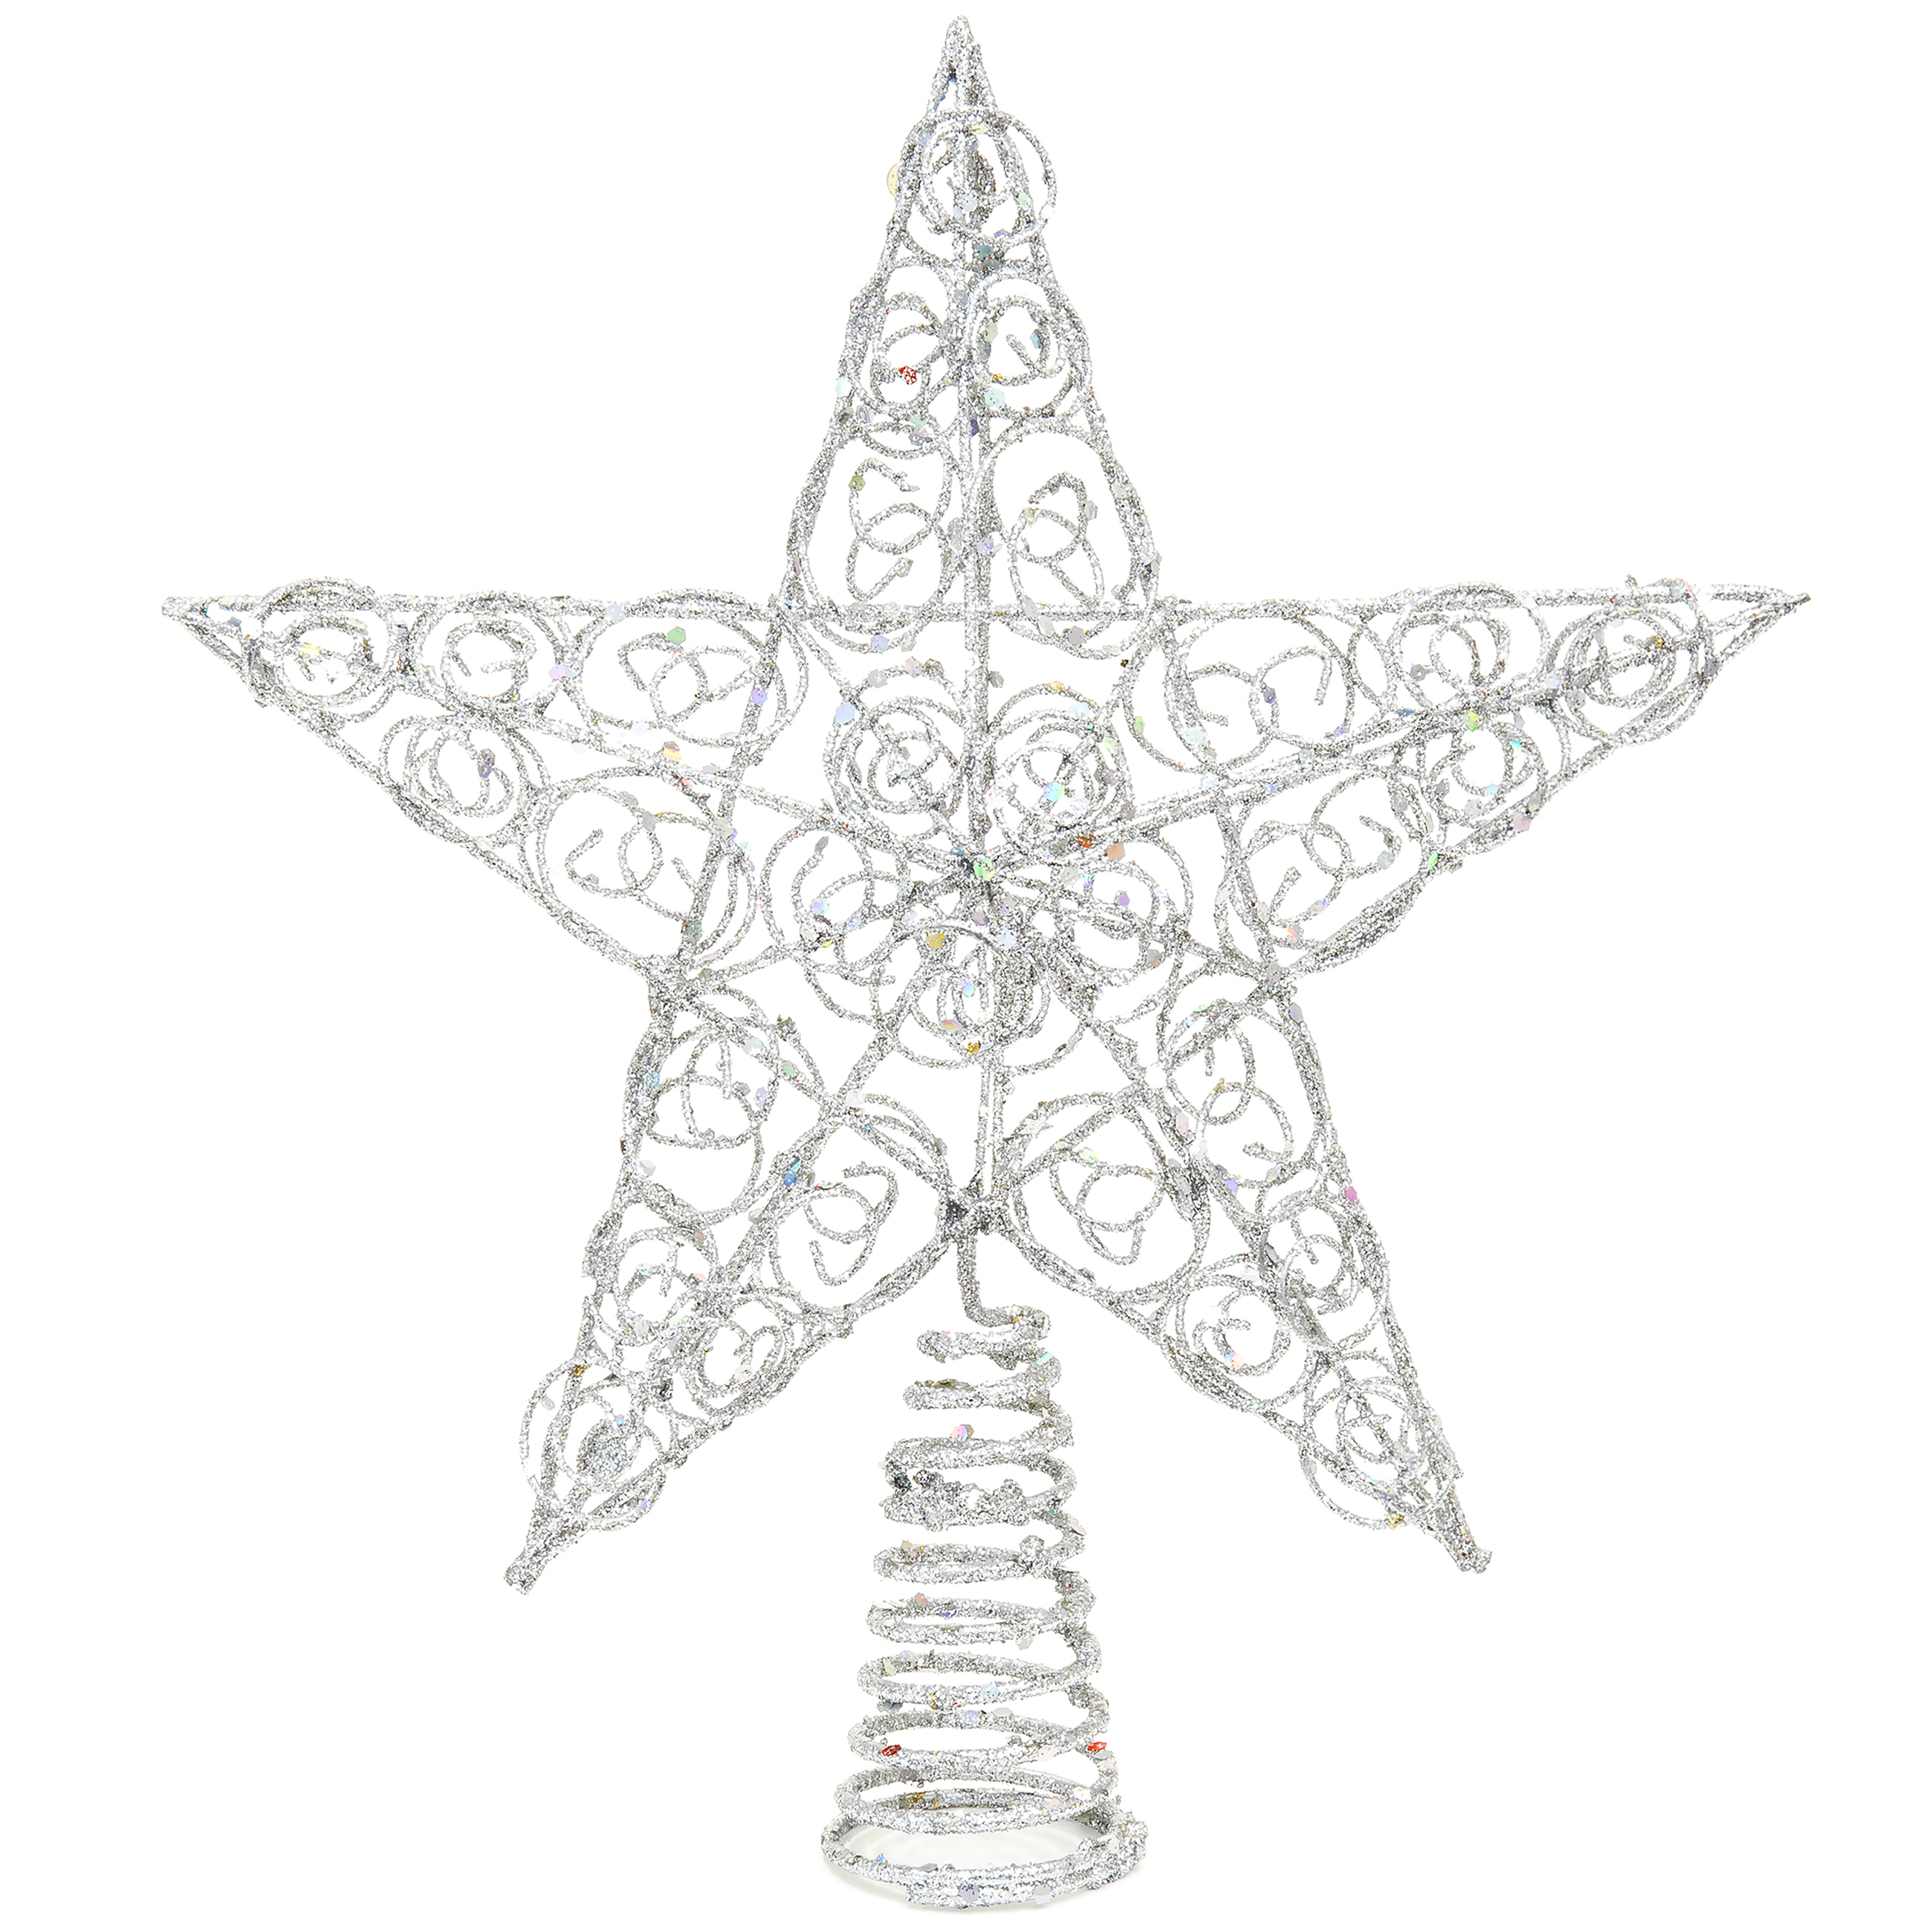 Best Choice Products 10in 5-Point Decorative Metal Wire Christmas Treetop Star Topper w/ Glitter Design - Silver